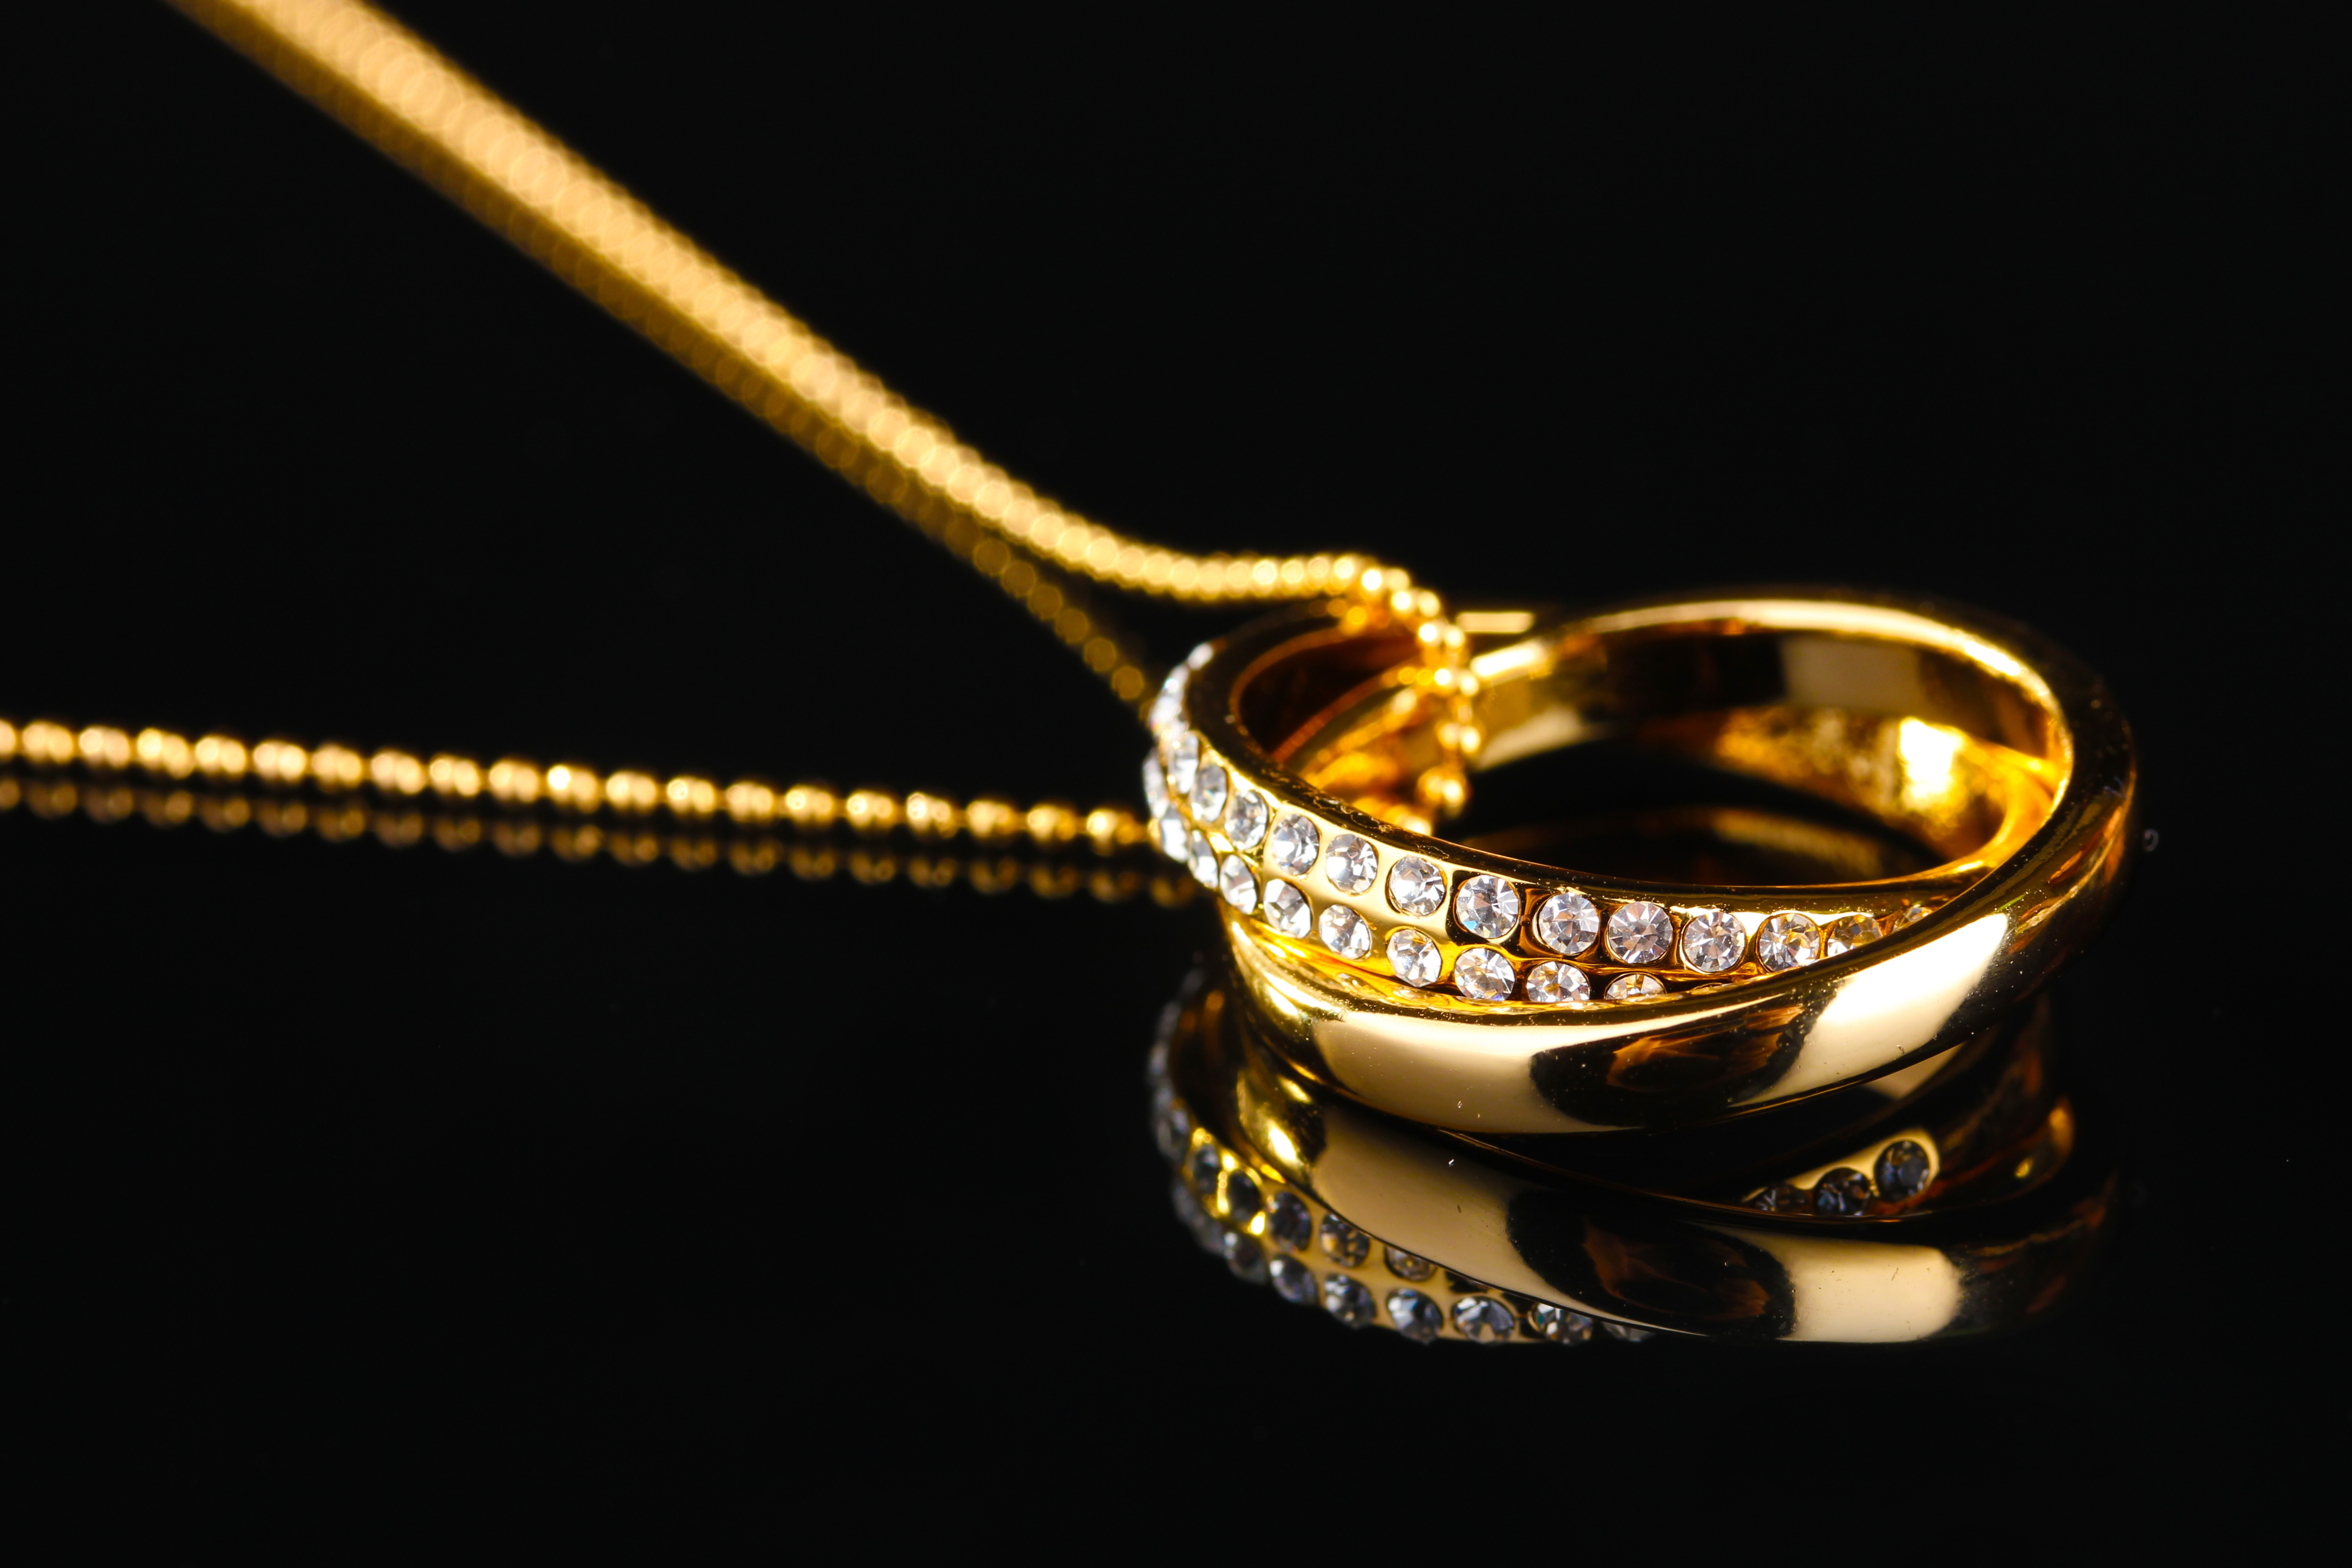 Gold Ring Jewelry on a Chain